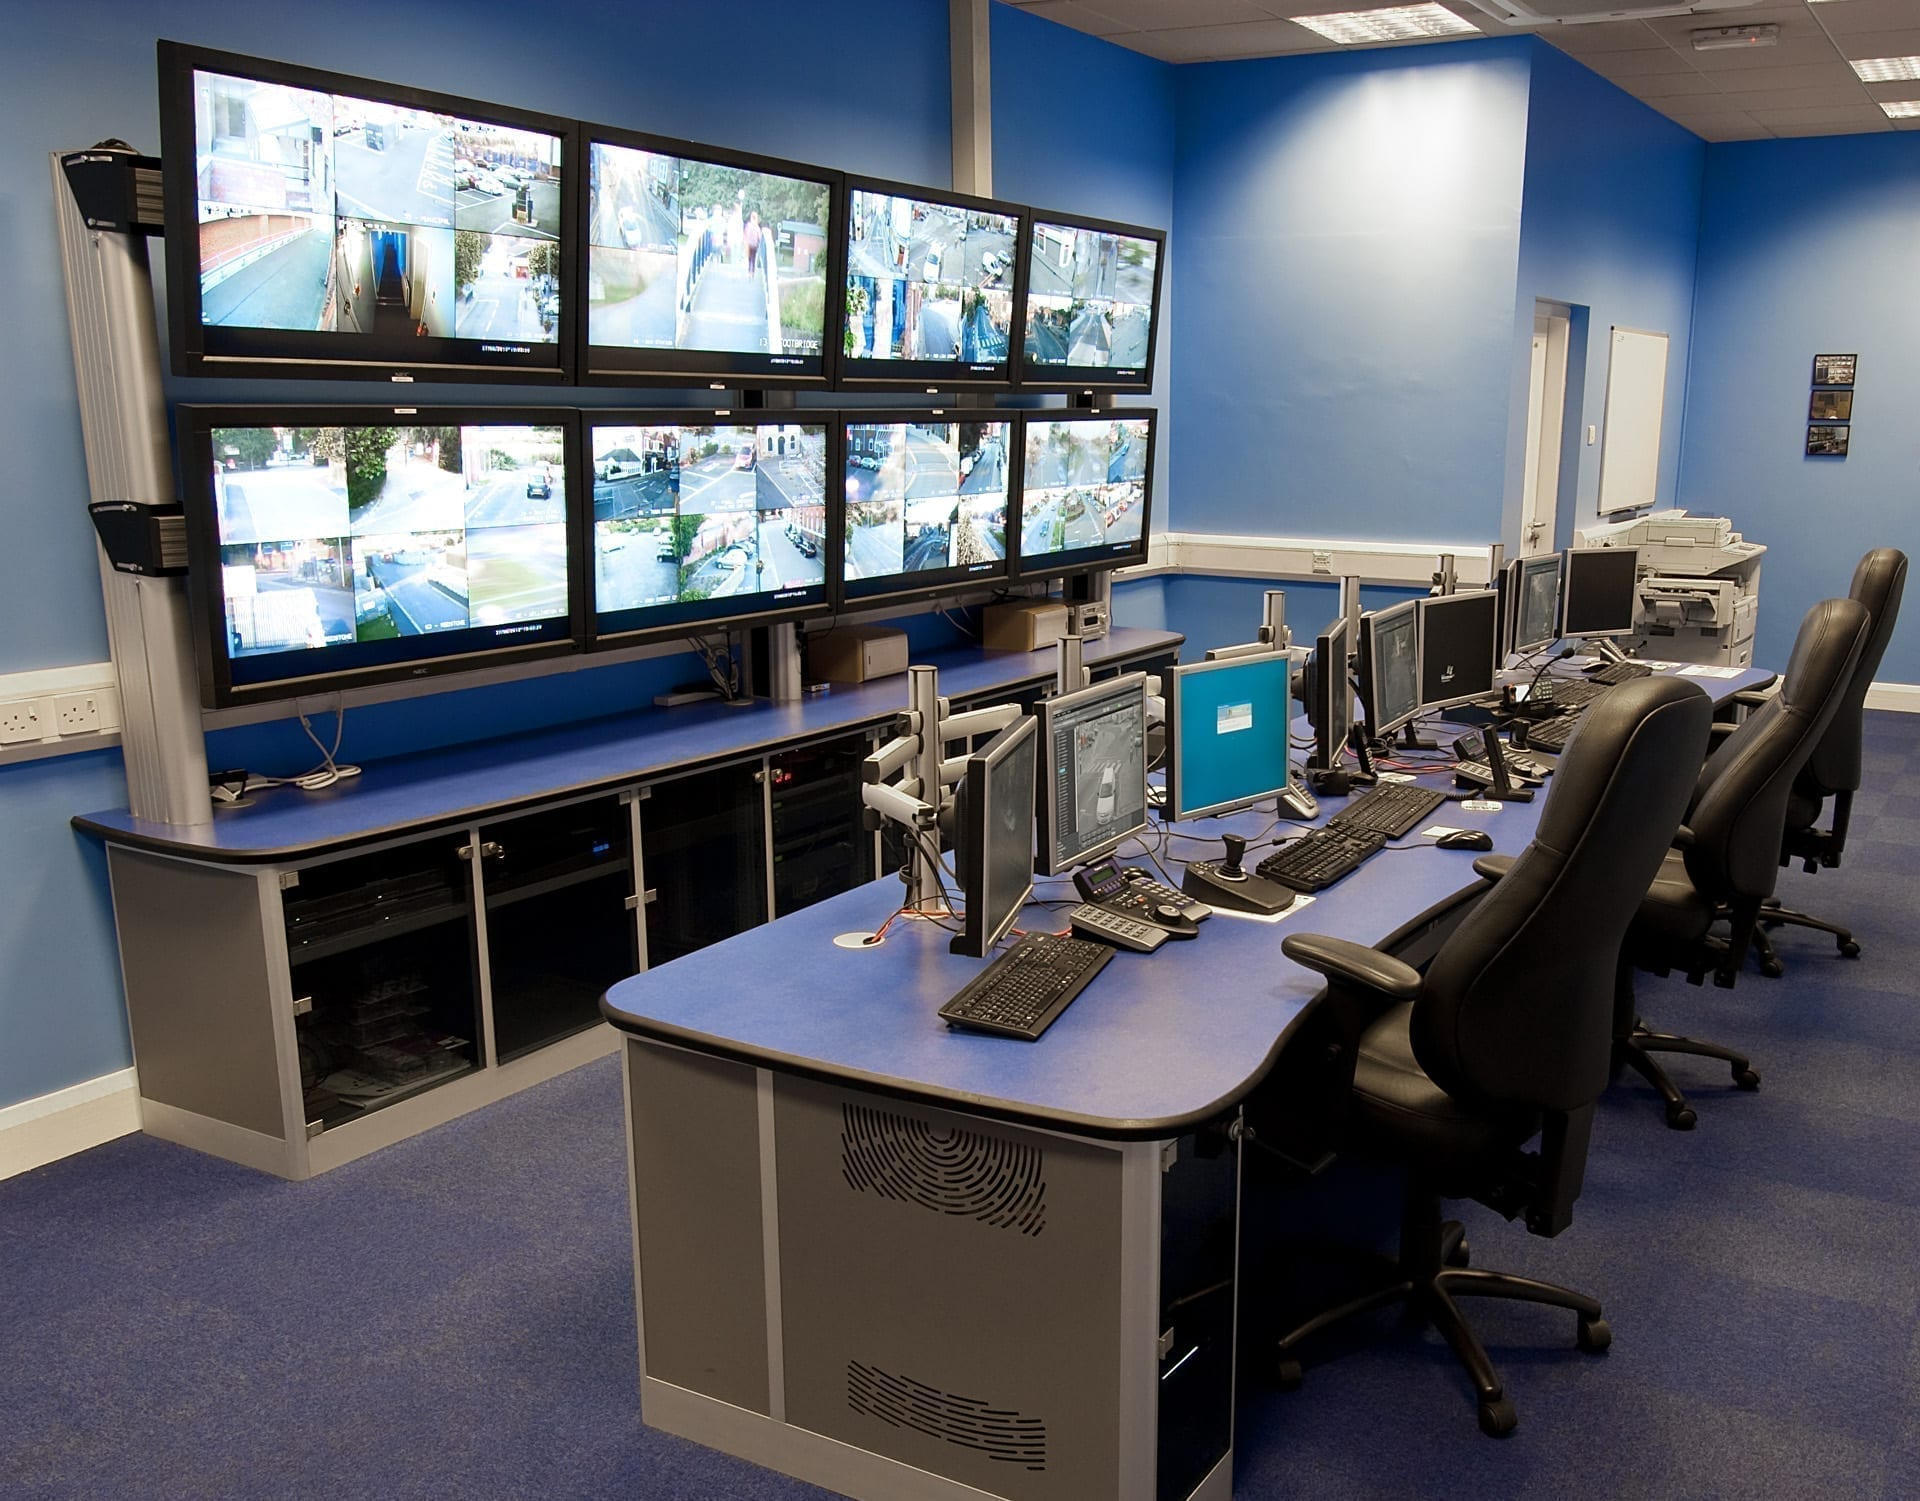 Cctv Control Room Case Study Thinking Space Systems